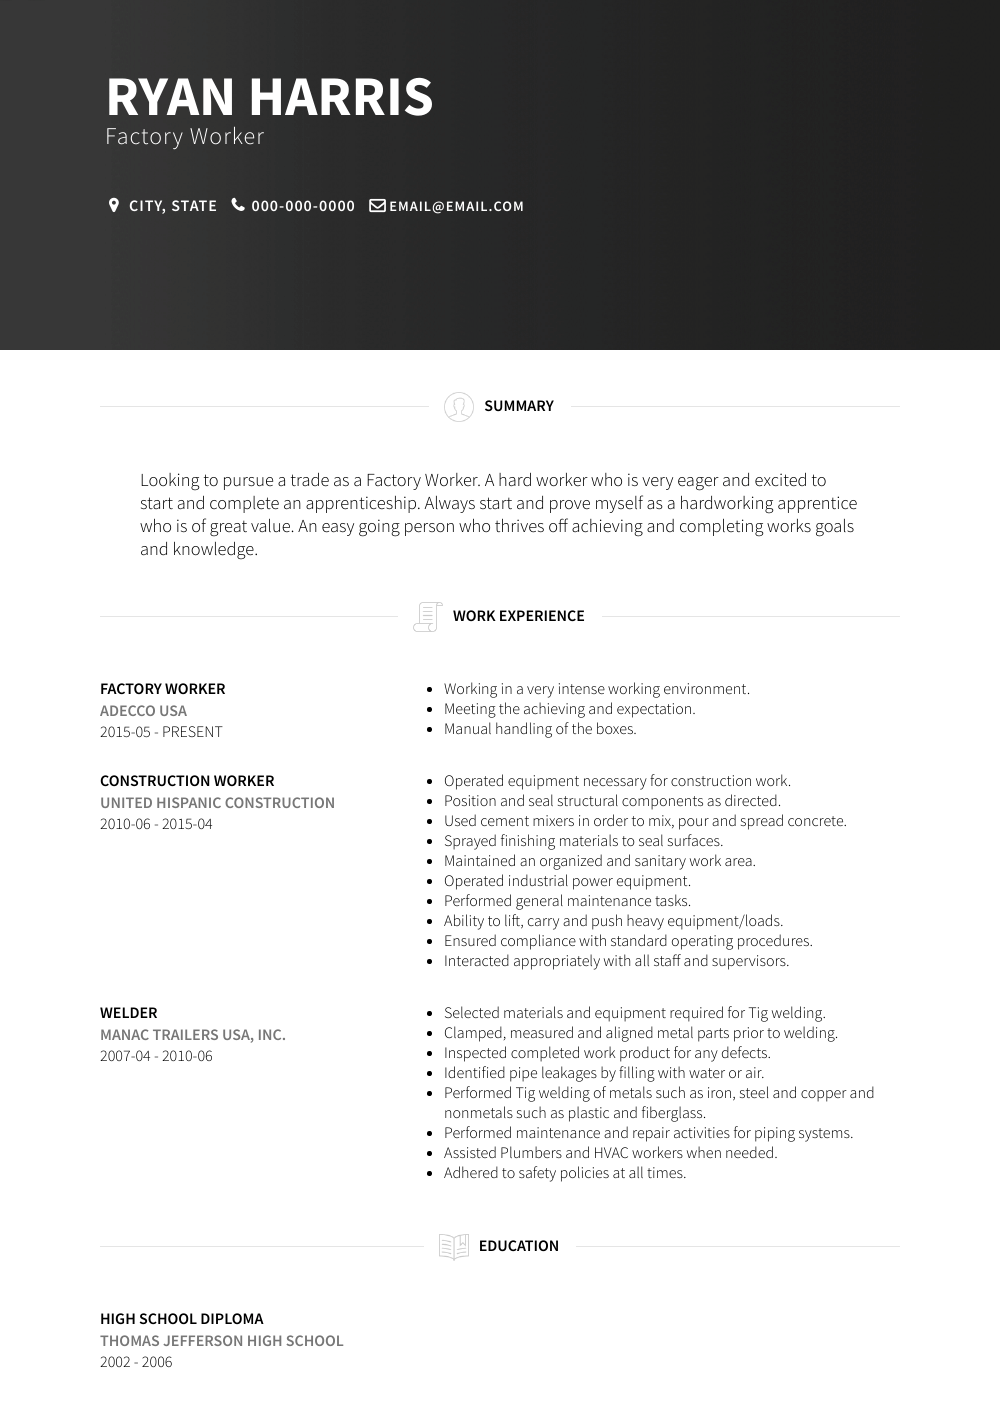 Factory Worker Resume Sample and Template